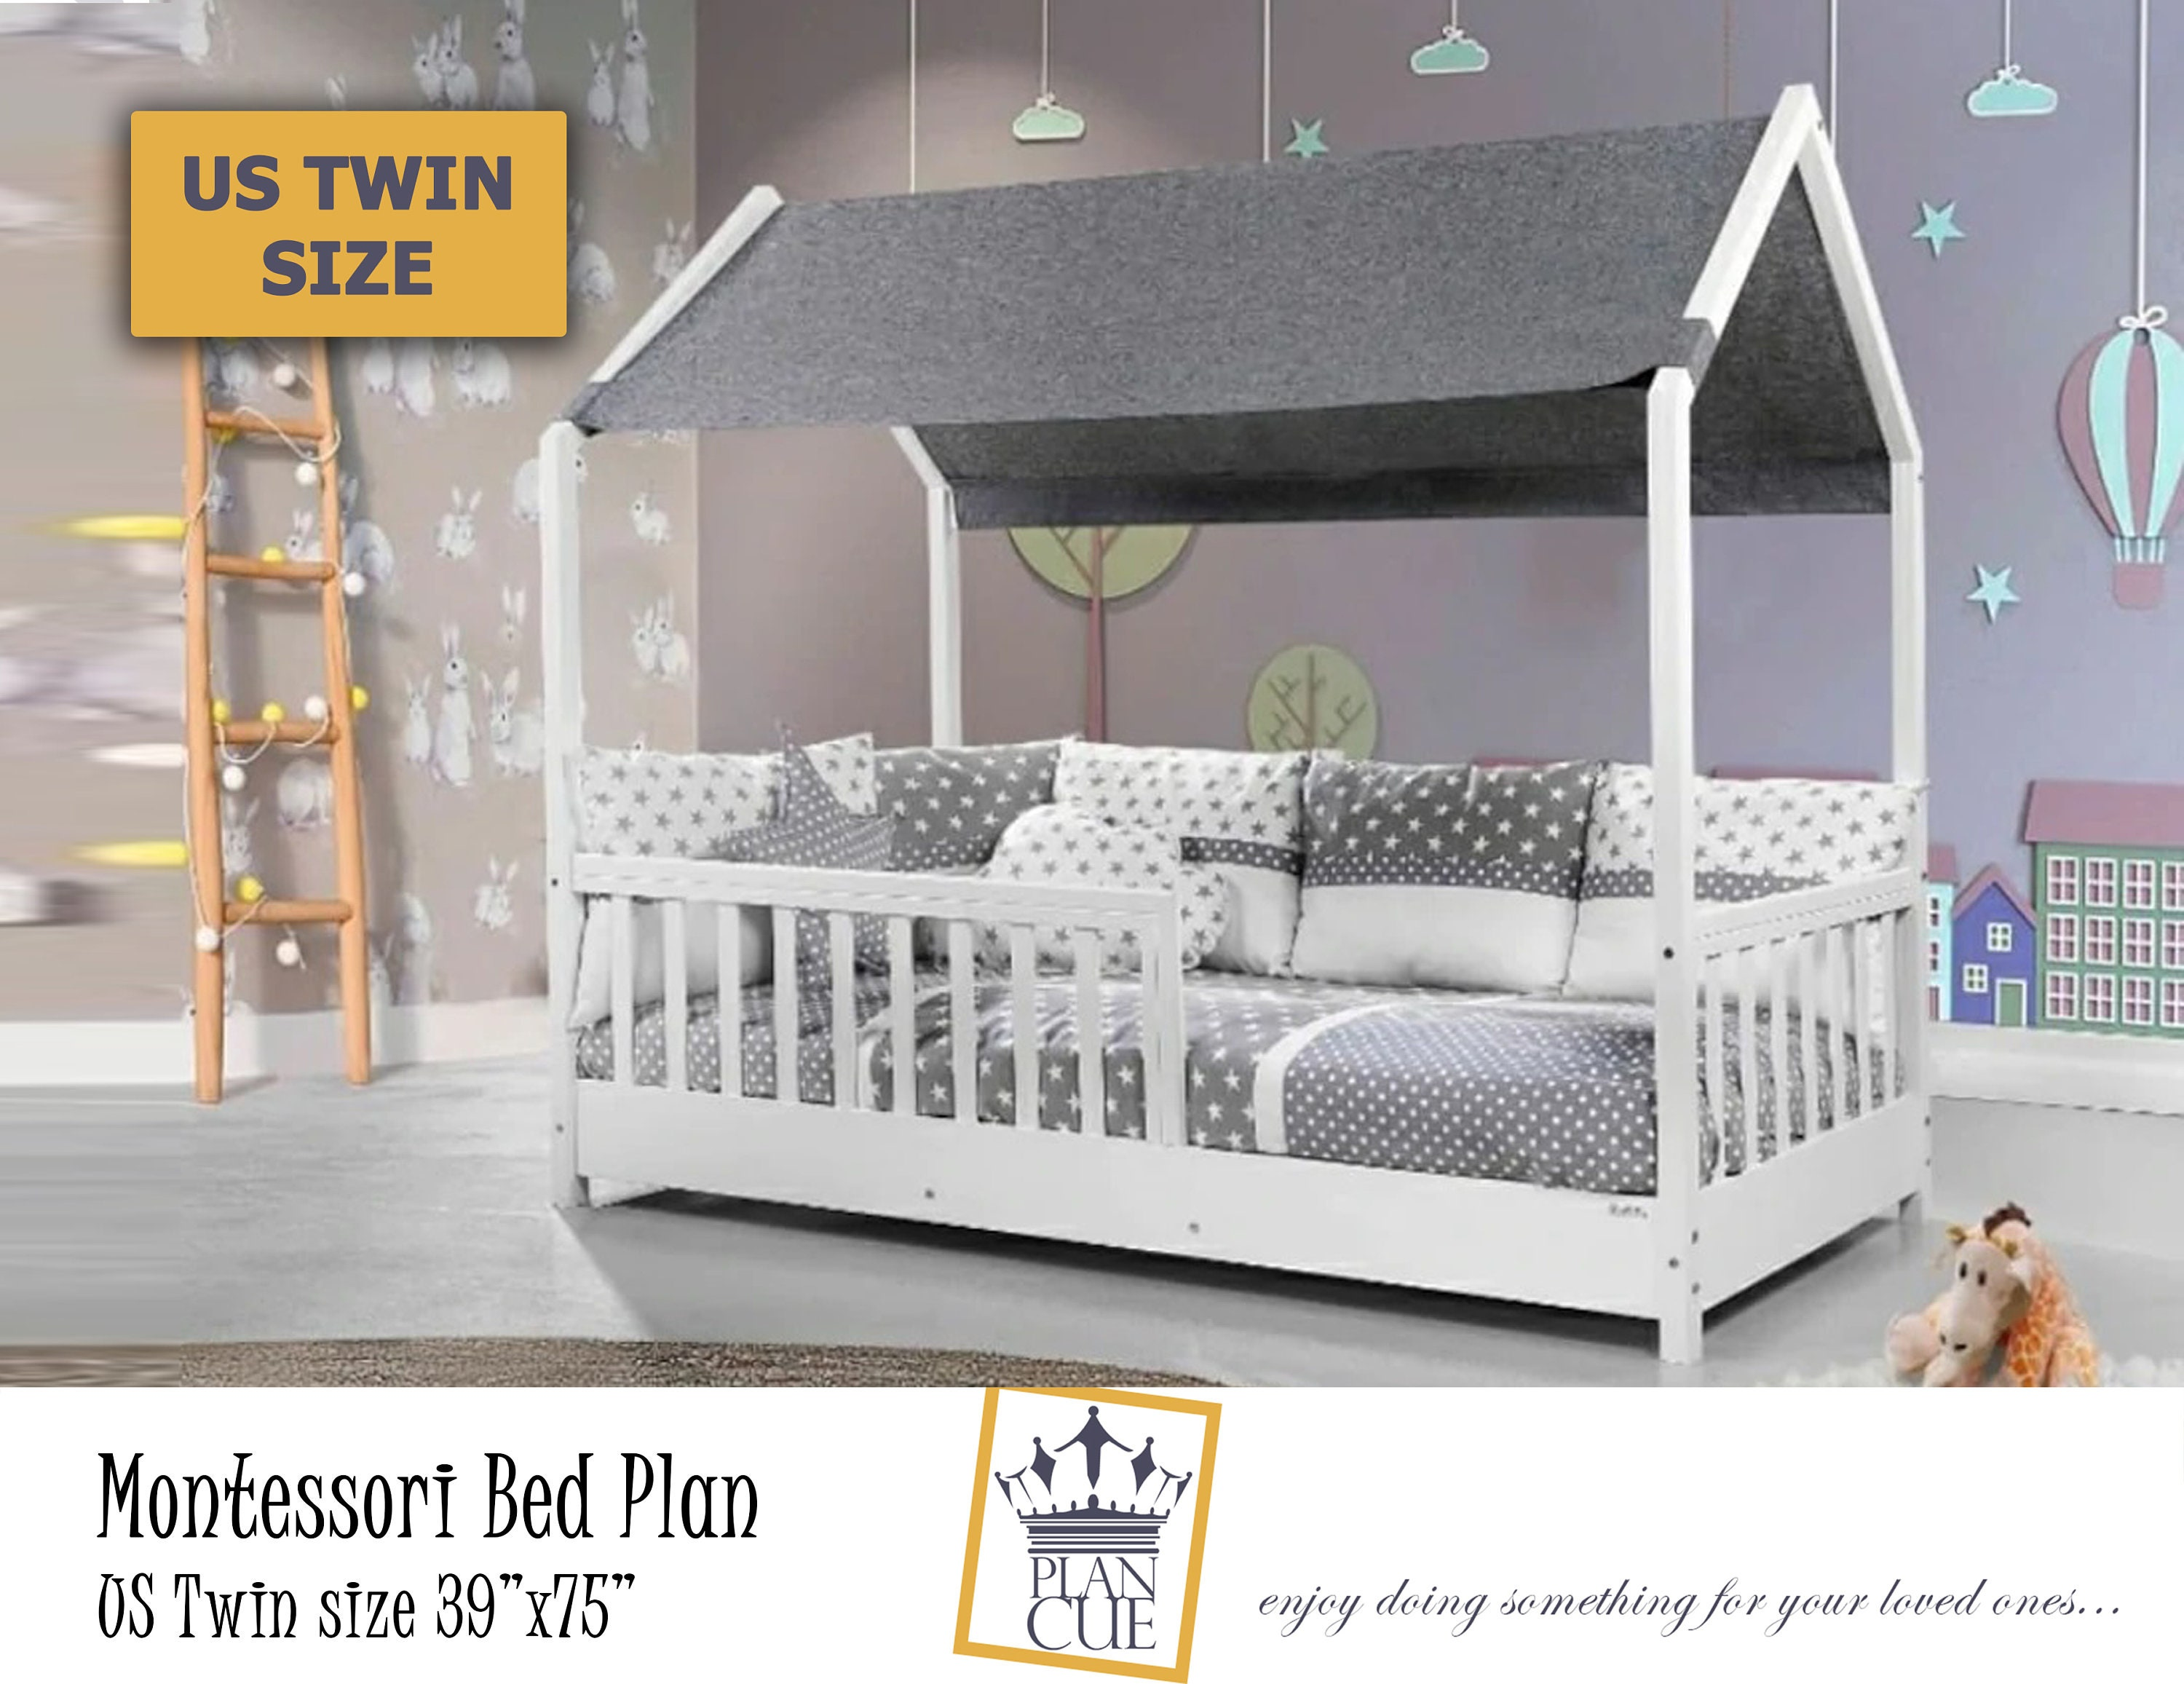 Montessori Twin Toddler House Bed Plan Wooden Twin Bed Frame Easy Diy Plan For Toddler Floor Bed To Kids Bedroom